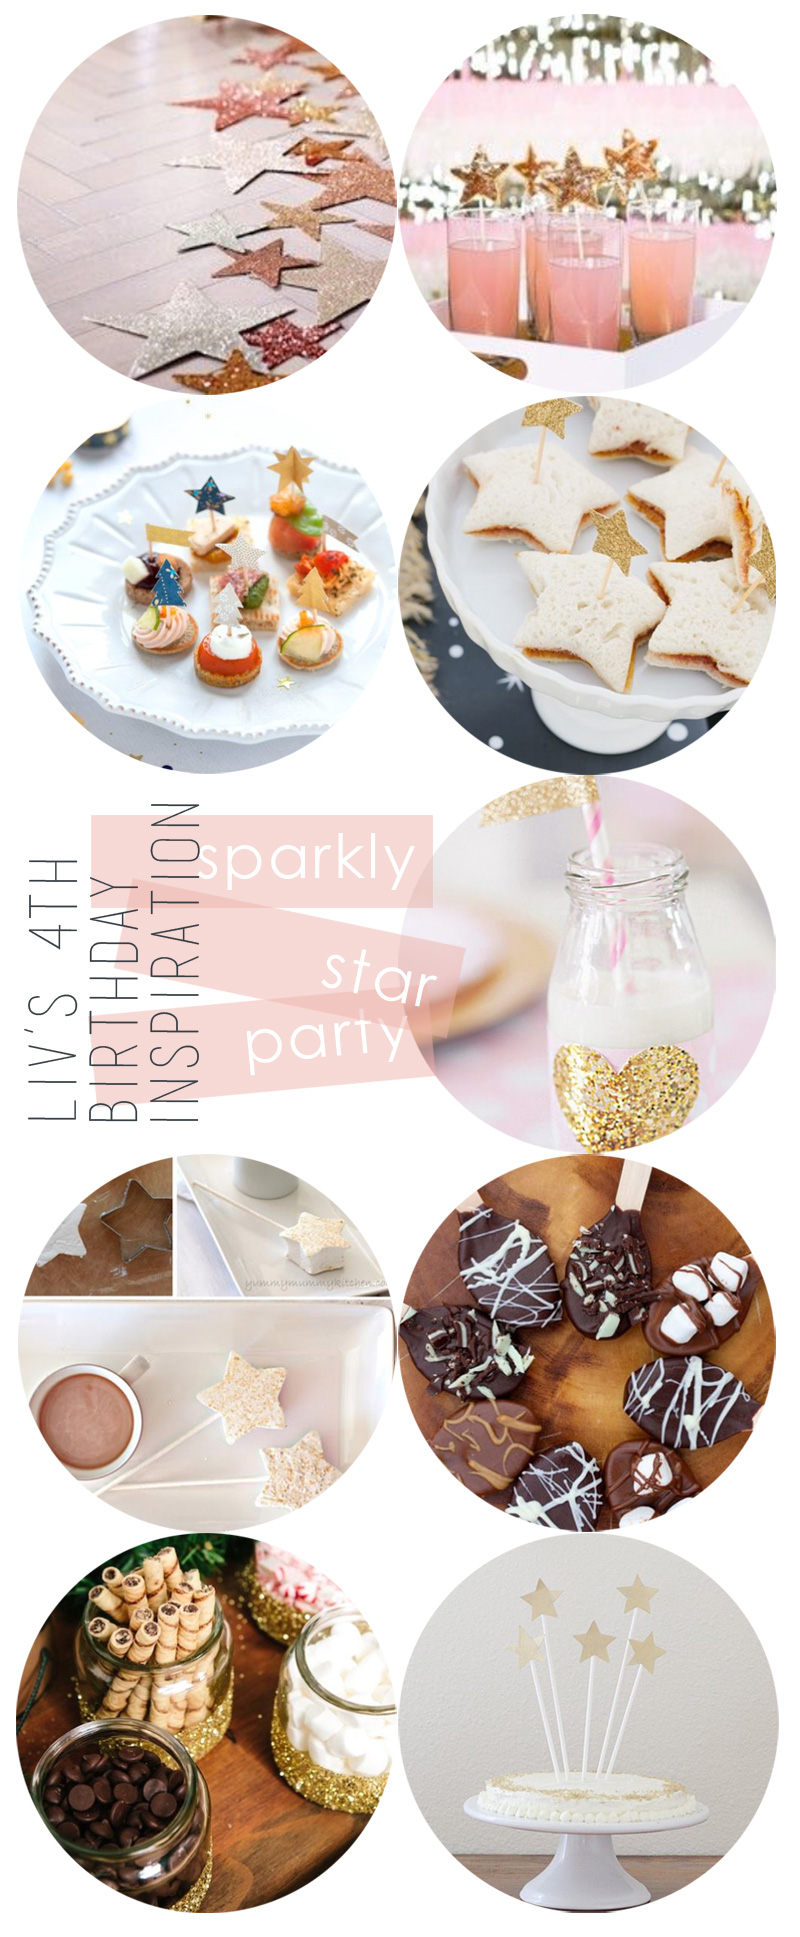 Liv's Sparkly Star 4th Birthday Party Inspiration | PepperDesignBlog.com